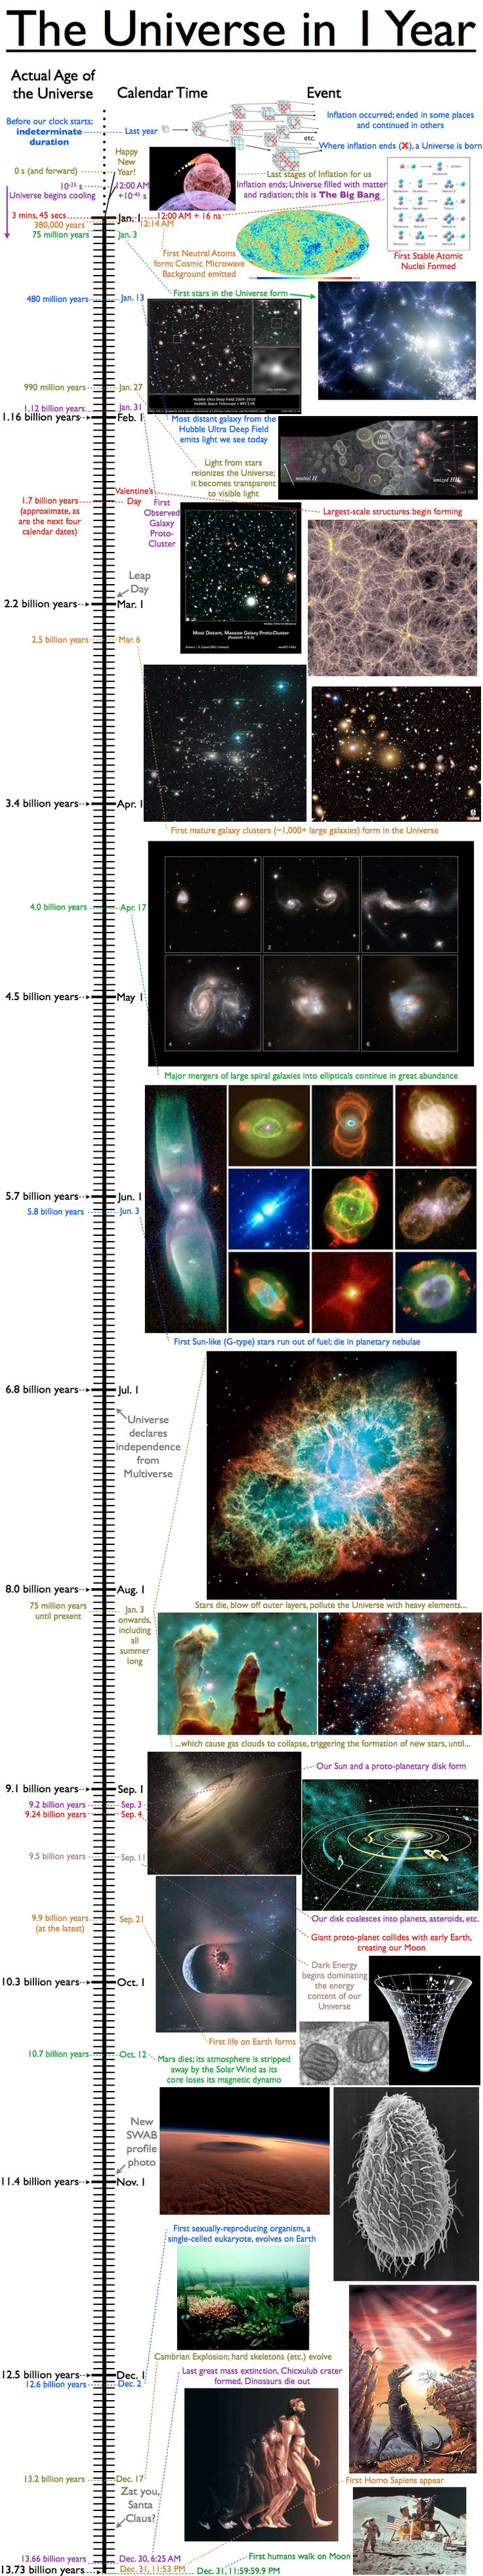 Timeline of the universe (infography) by leshumainsassocies, via Flickr